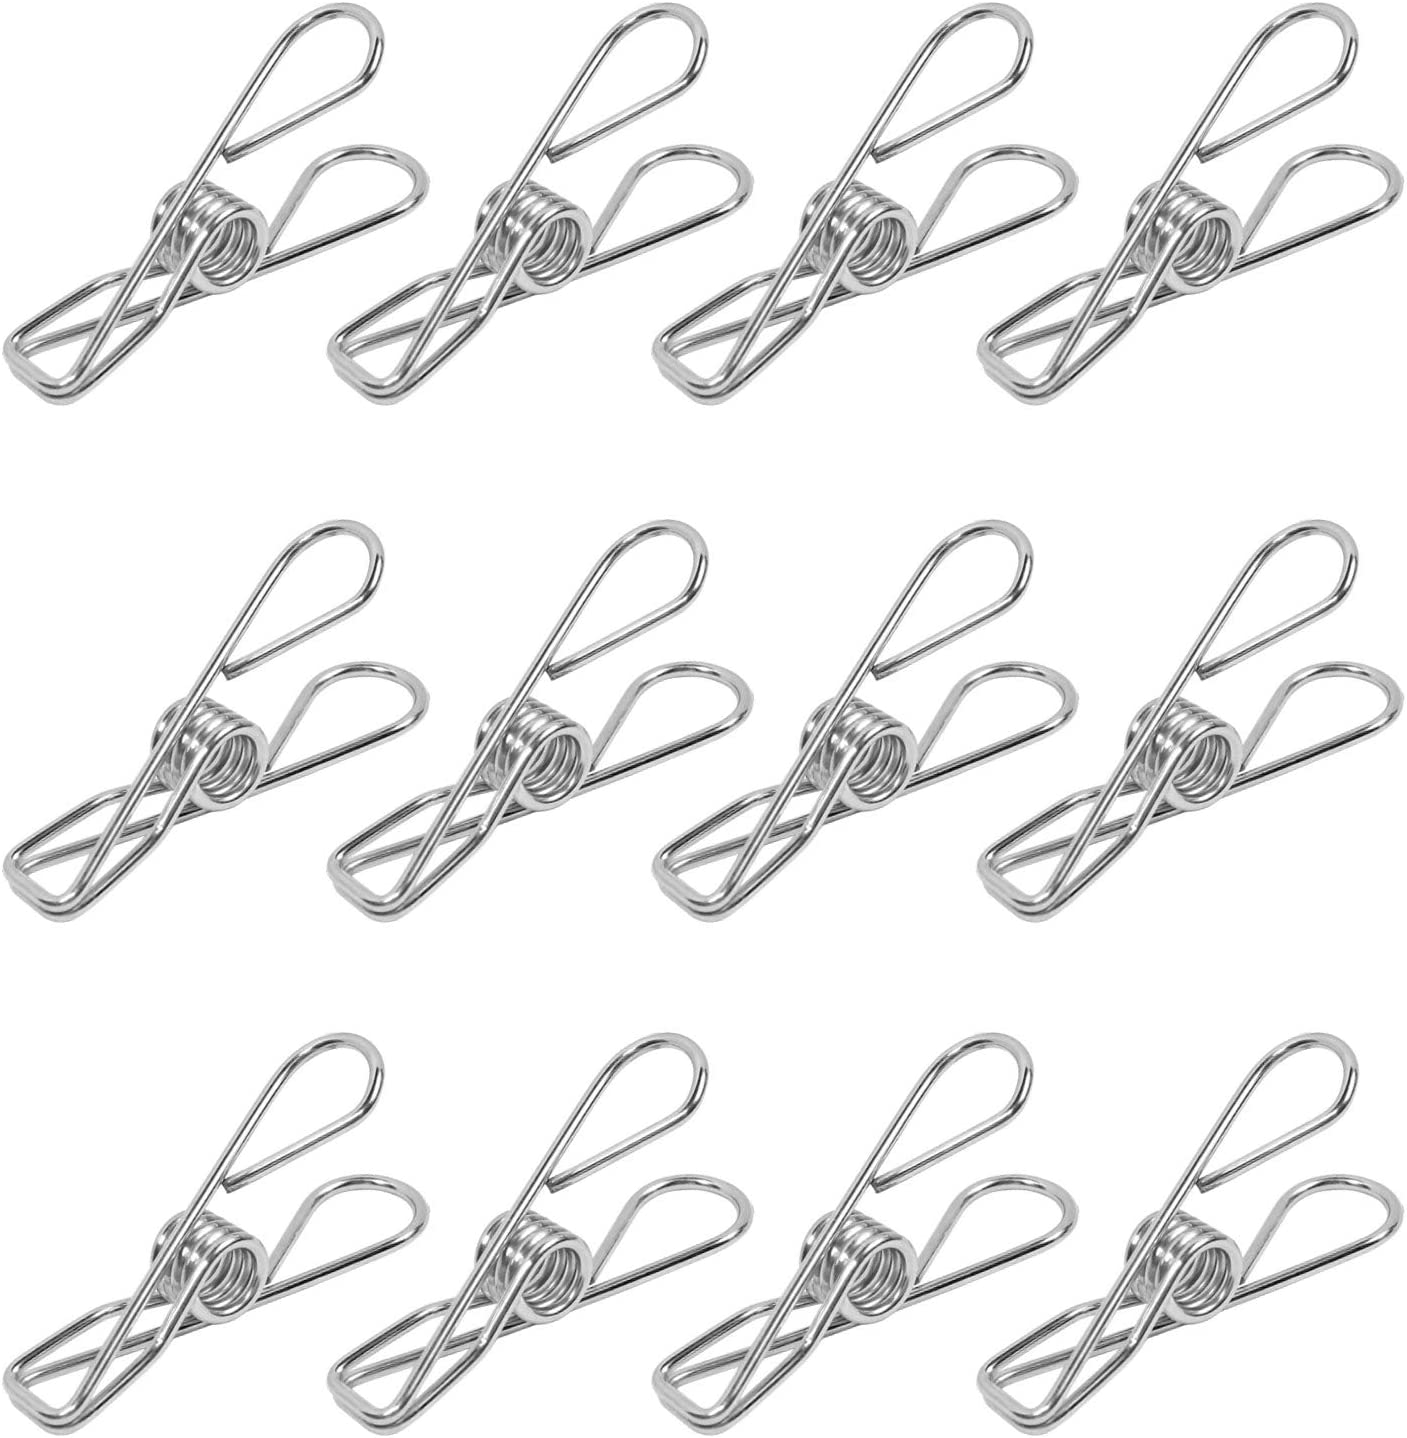 Millennial Essentials 30 Pack Stainless Steel Clothespins 2.2 Inch Clothes Pins Wire Clip Multi Purpose Utility Clips for Hanging Clothes Clothesline Laundry Clip (30)